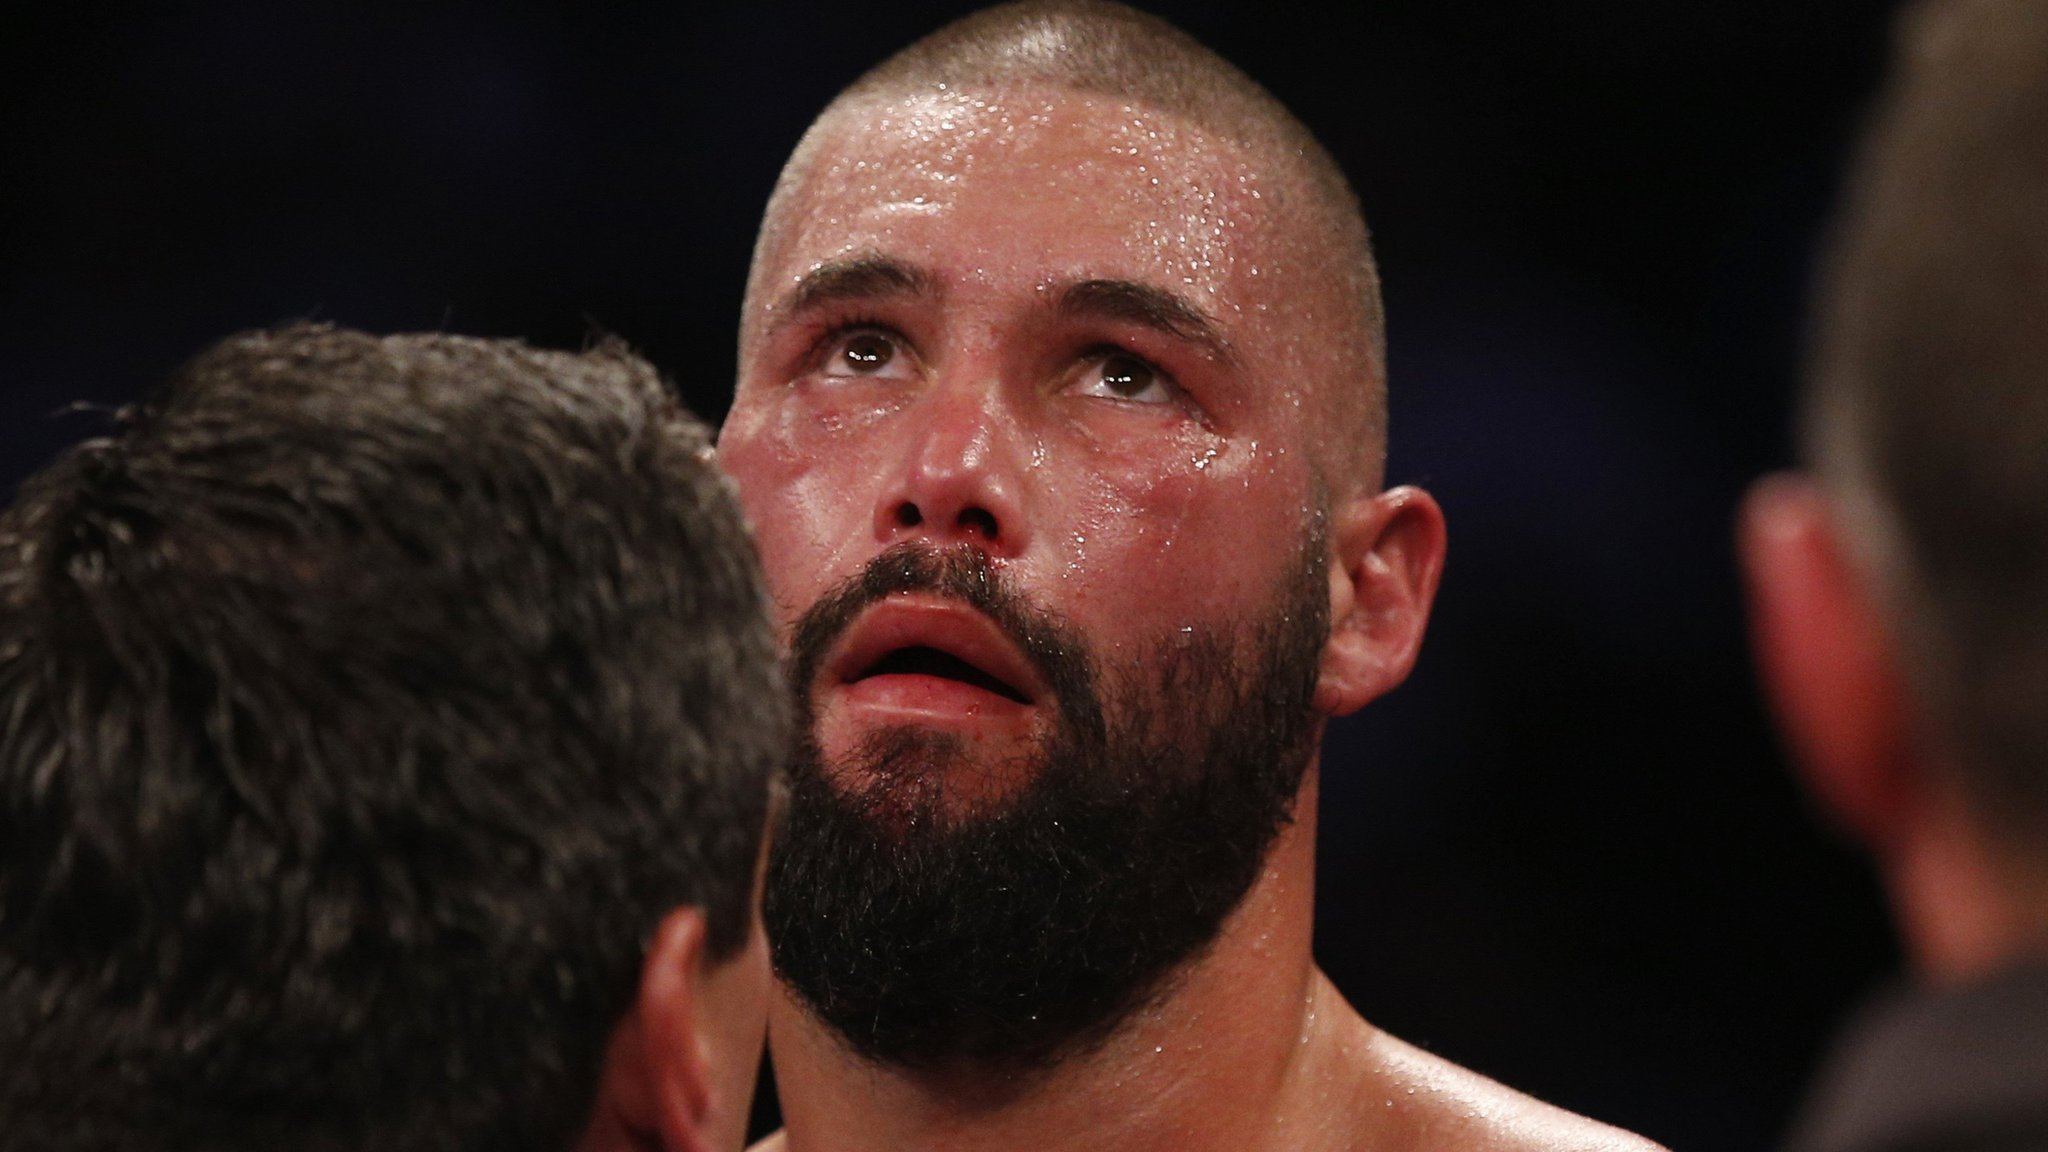 'It's over' - emotional Bellew retires following defeat